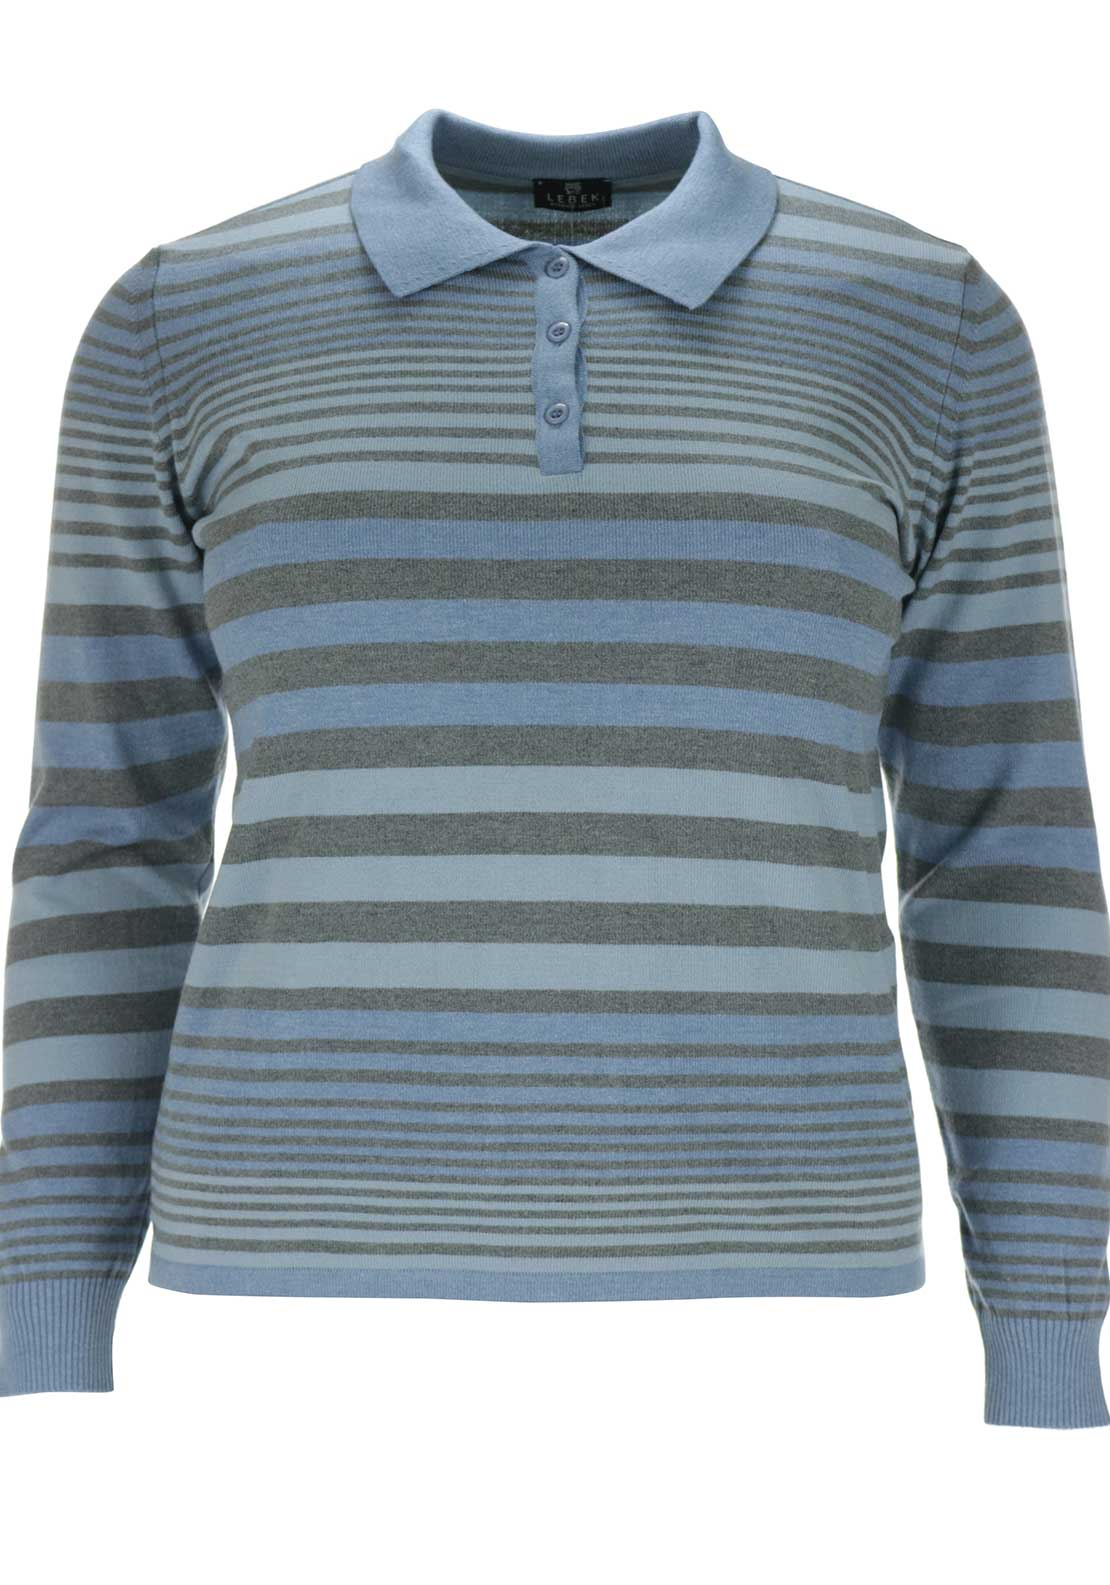 Lebek Striped Fine Knit Polo Shirt, Blue and Grey